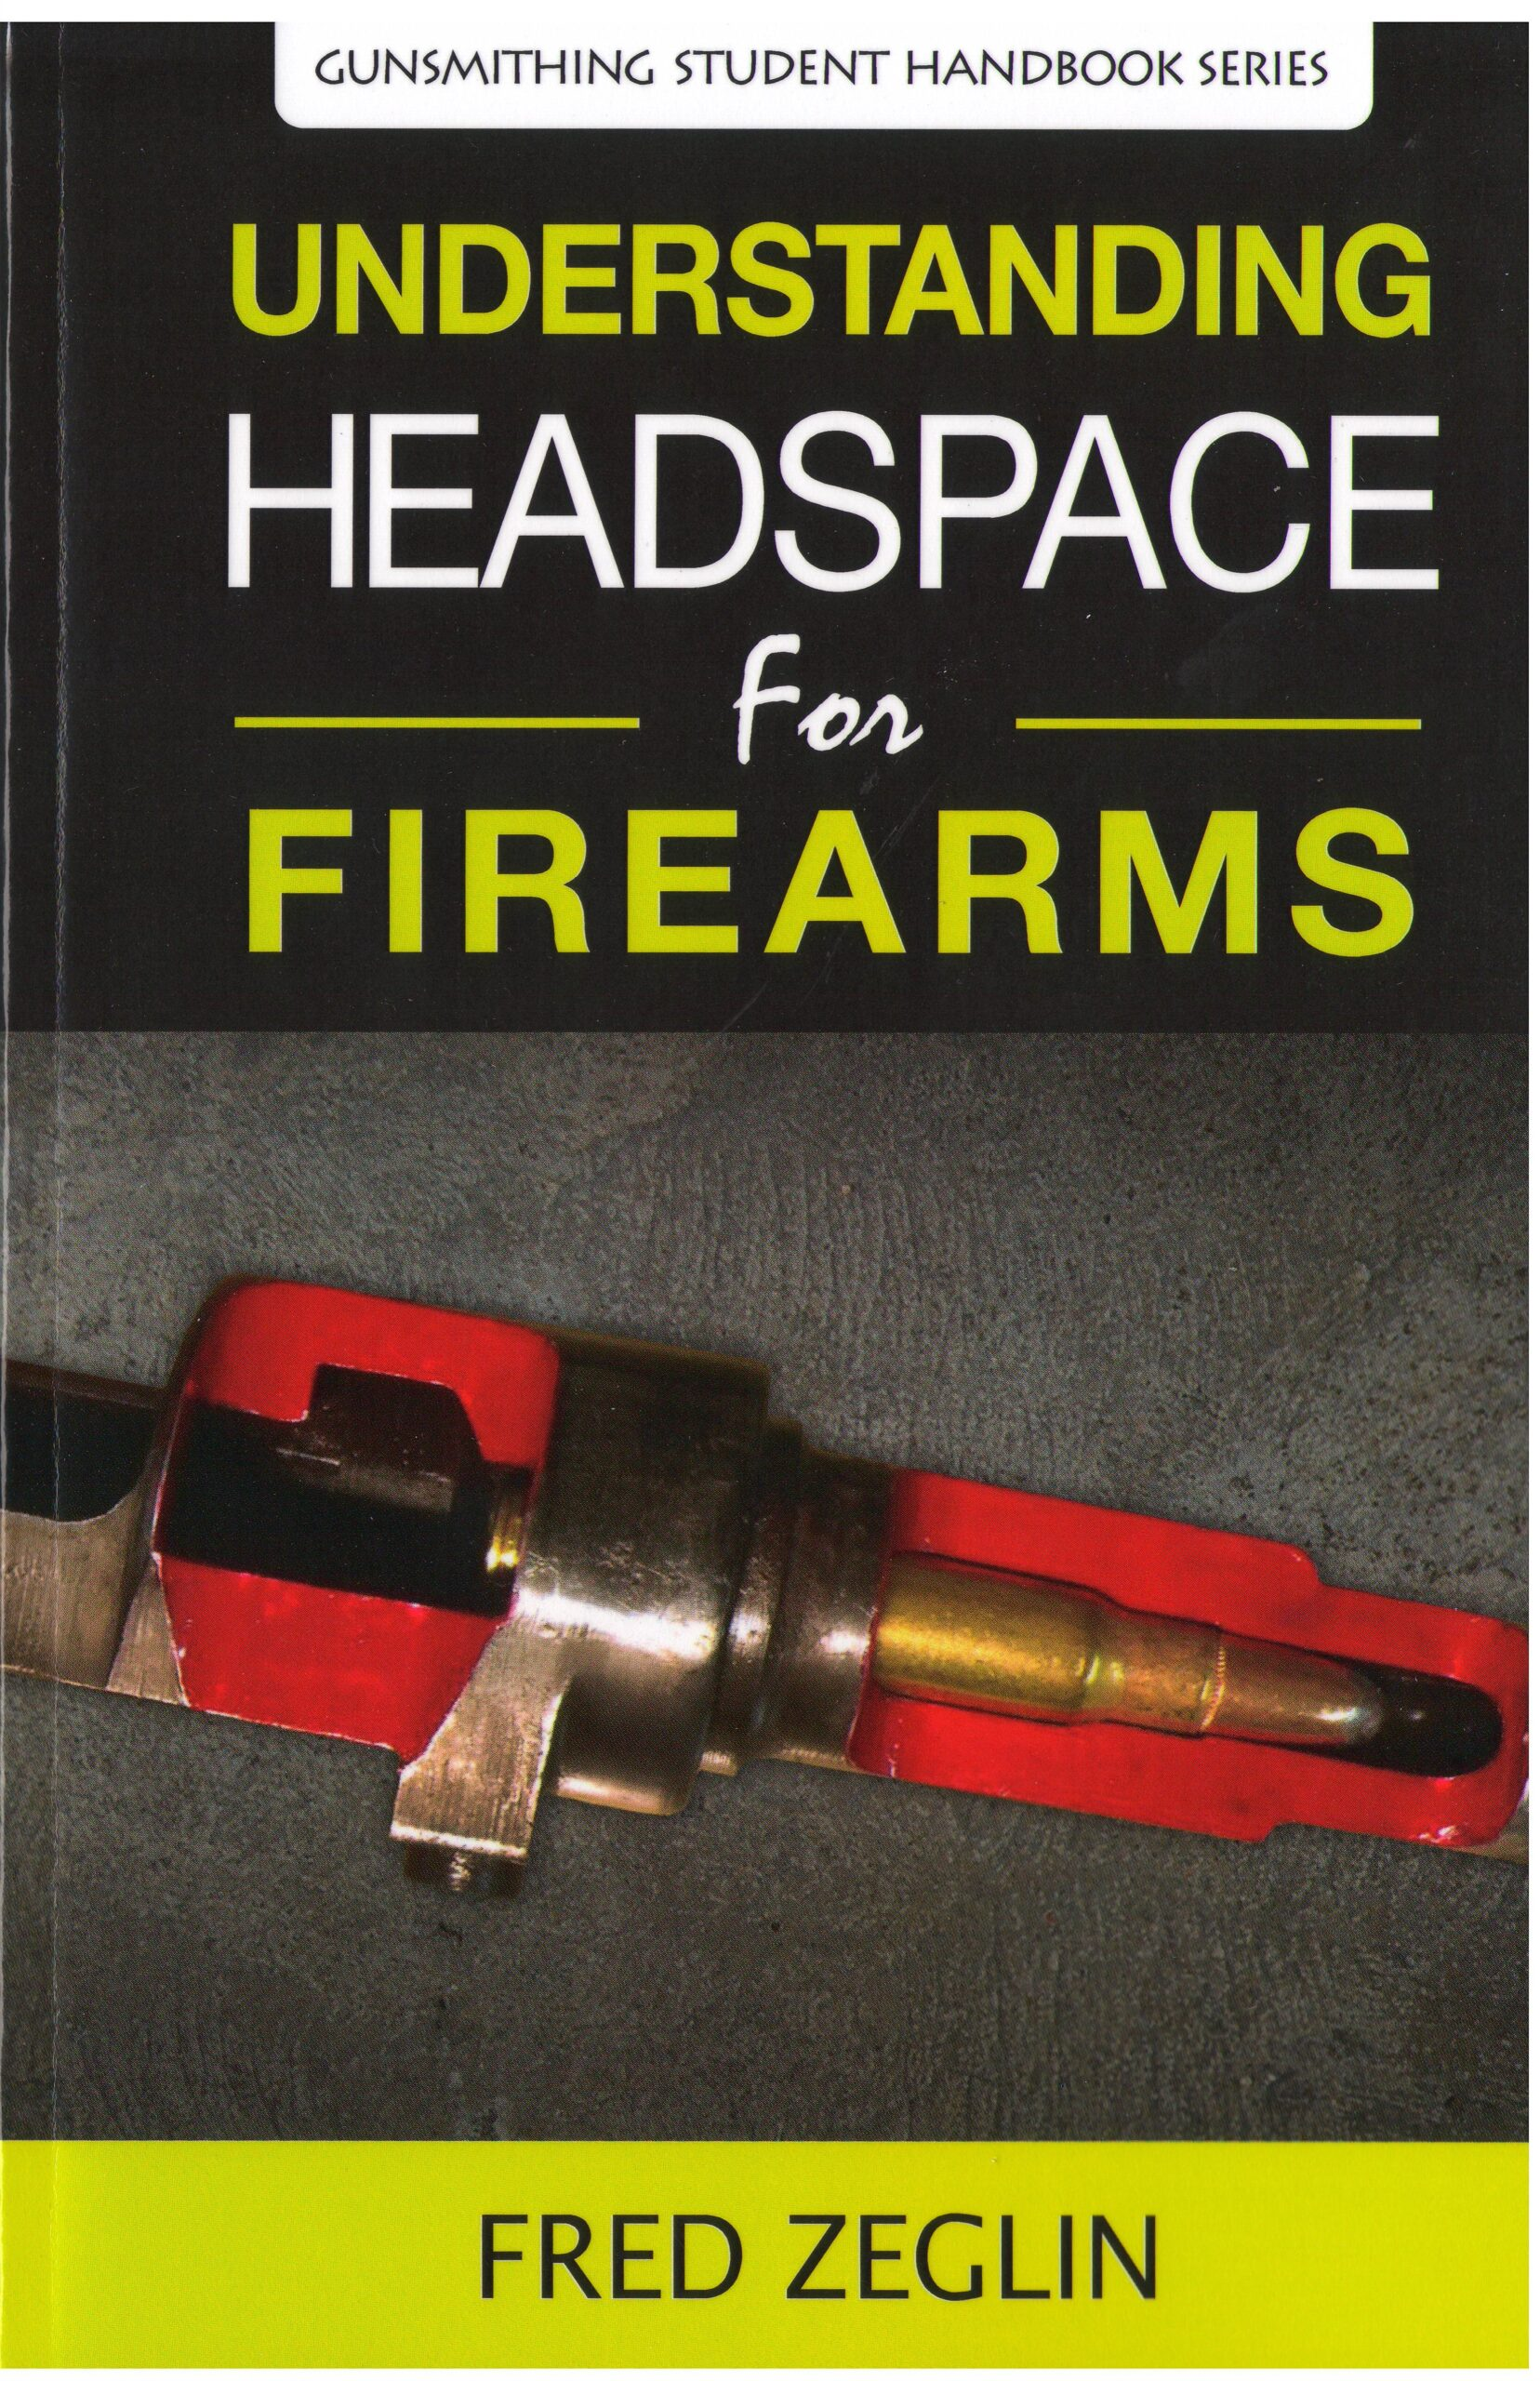 Book about firearms headspace